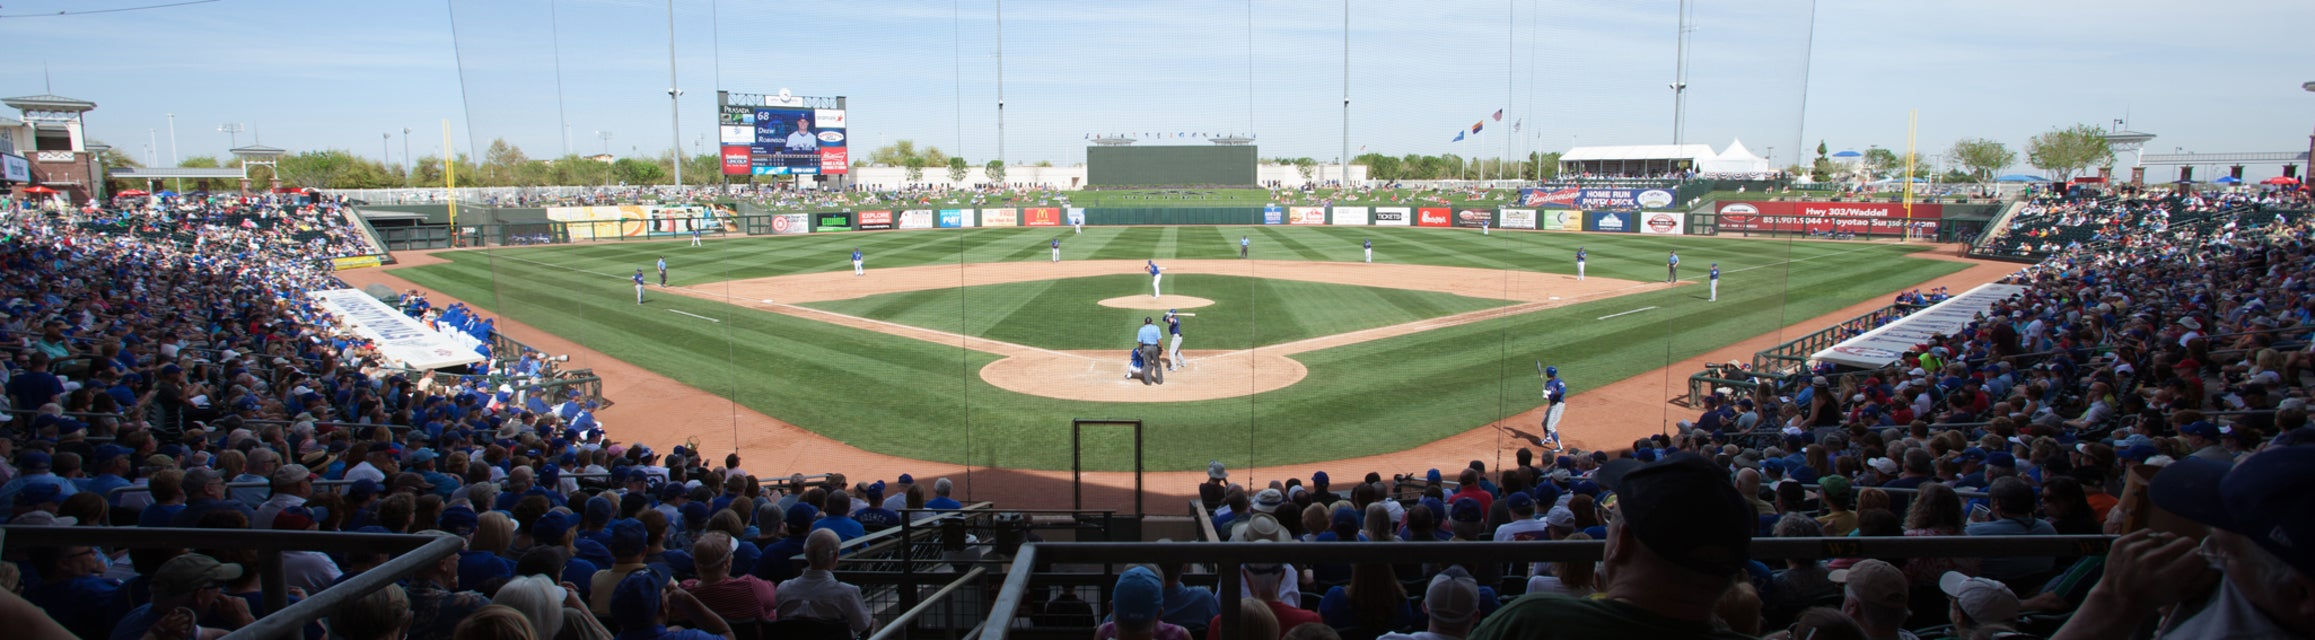 Royals - Spring Training Tickets